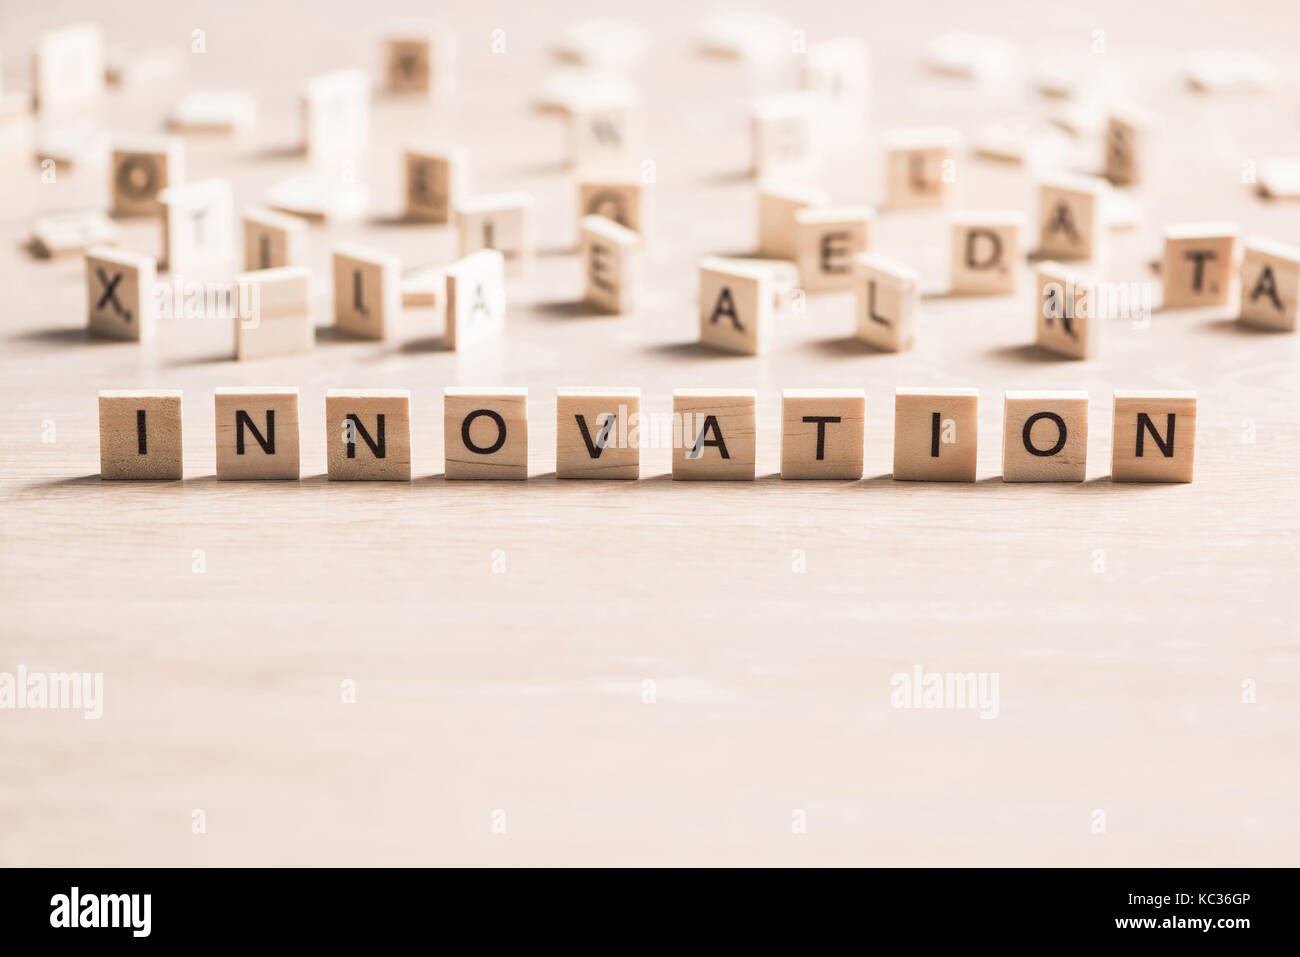 Innovation scrabble word - Stock Image